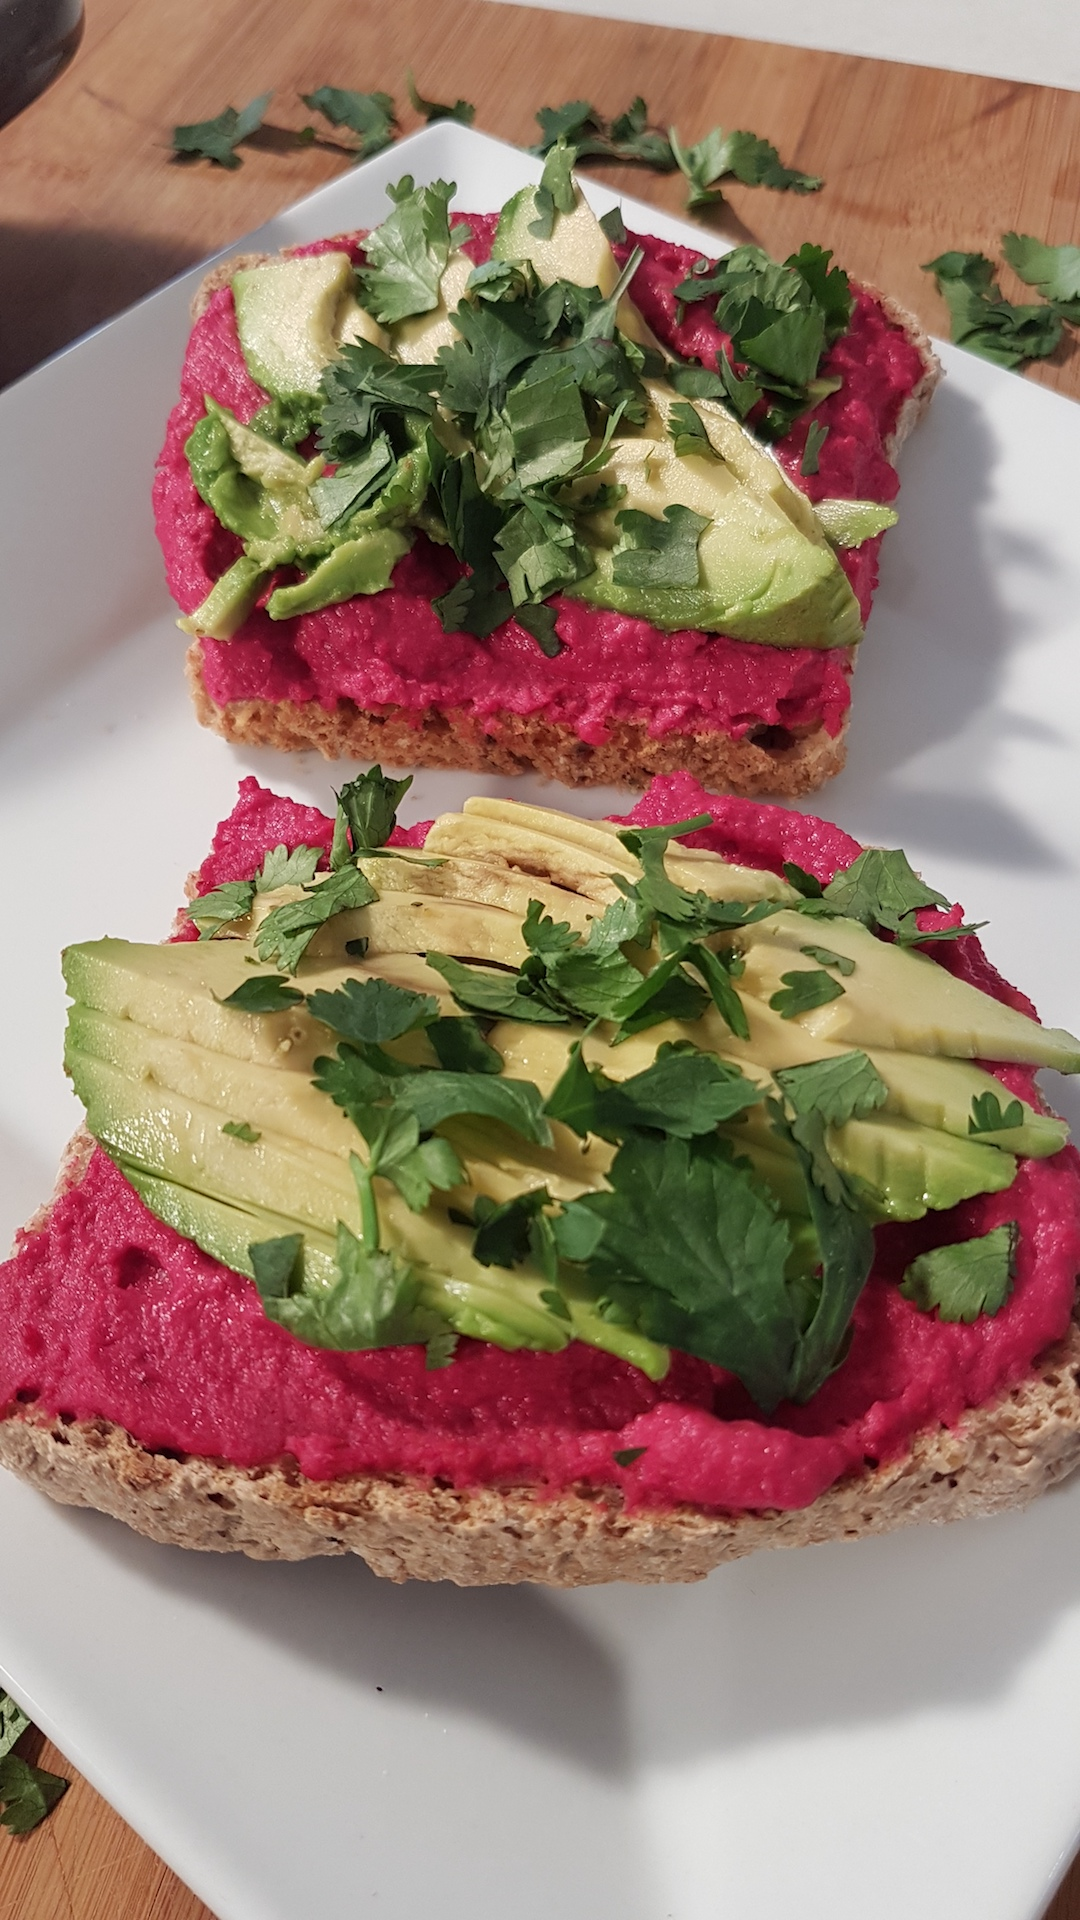 Beetroot Hummus and Avocado Open Faced Sandwich